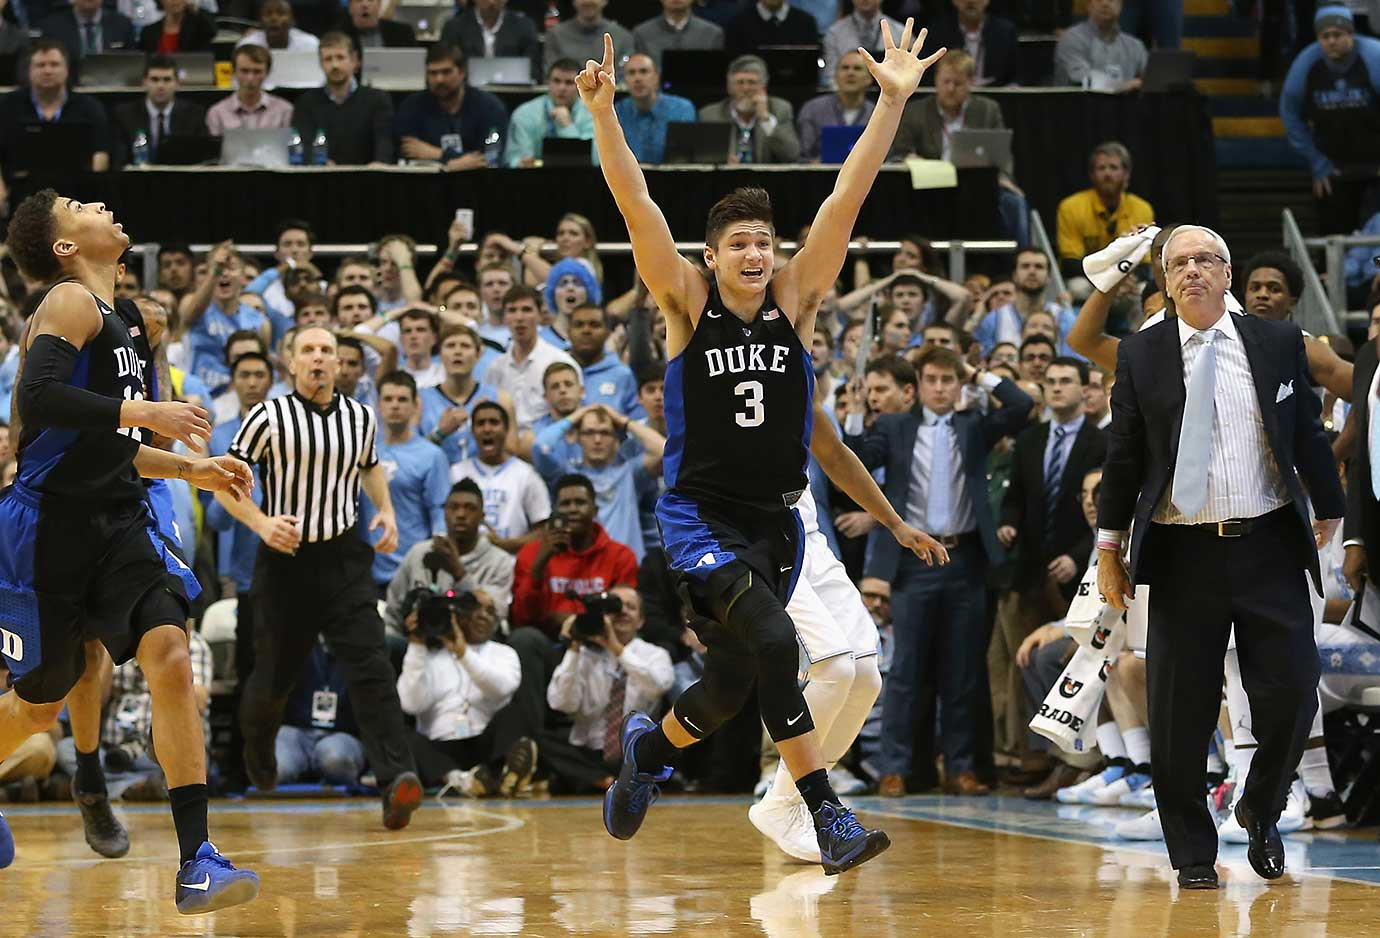 Here are some of the images that caught our eye on the sports night of Feb. 17, beginning with Grayson Allen celebrating and North Carolina coach Roy Williams lamenting the Blue Devils' shocking win over the No. 5 Tar Heels.